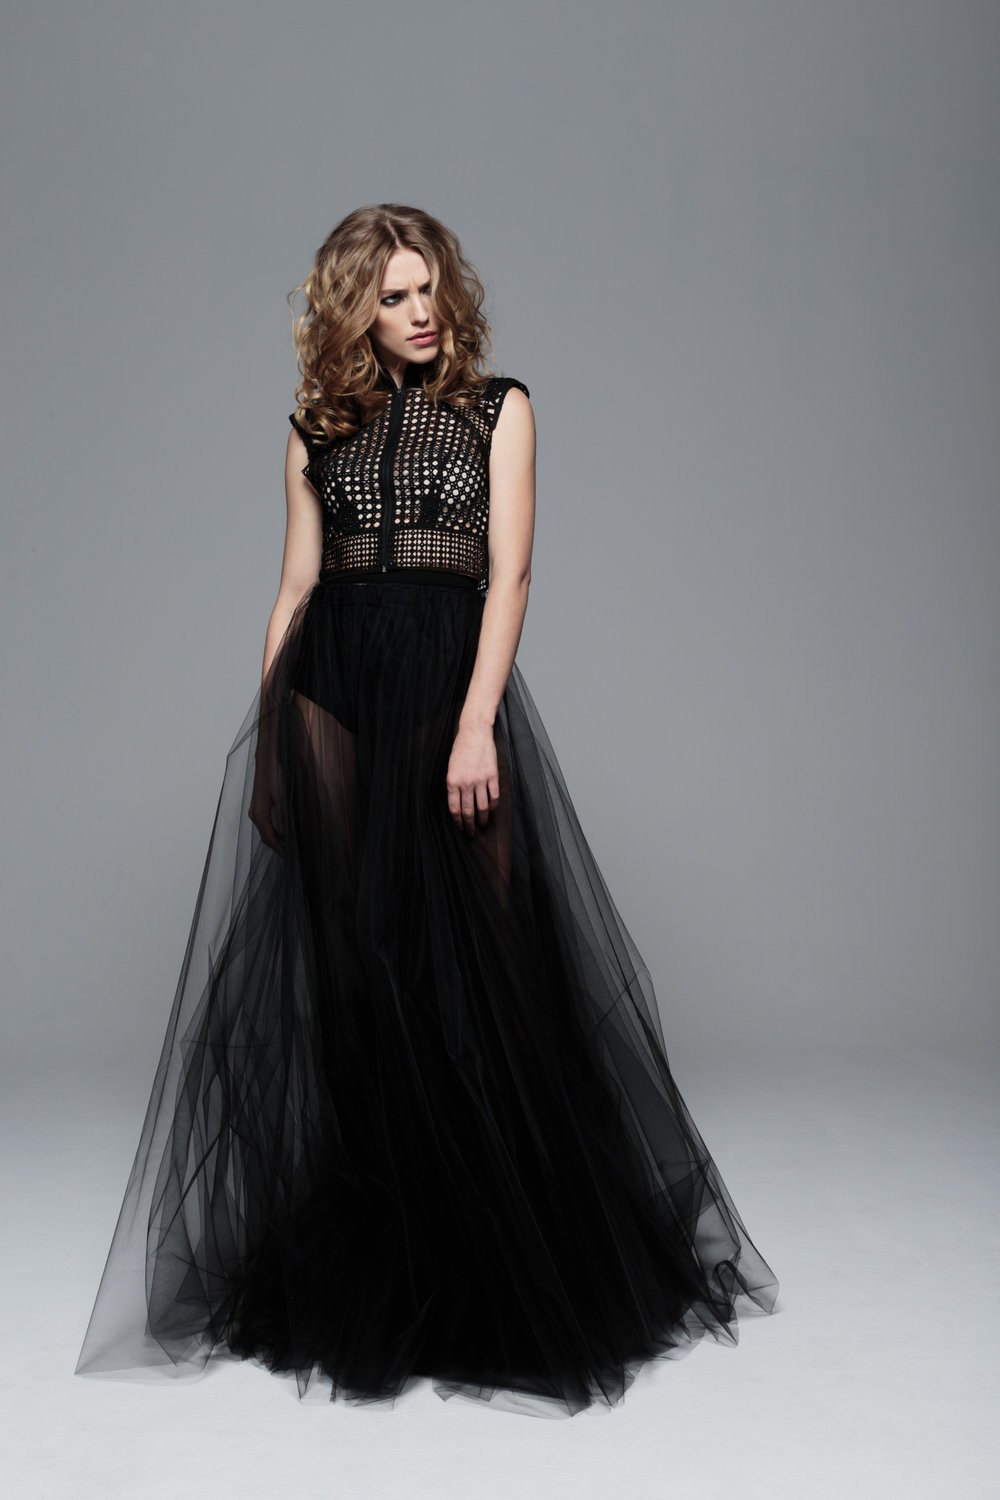 Axis Vest and Tulle Skirt